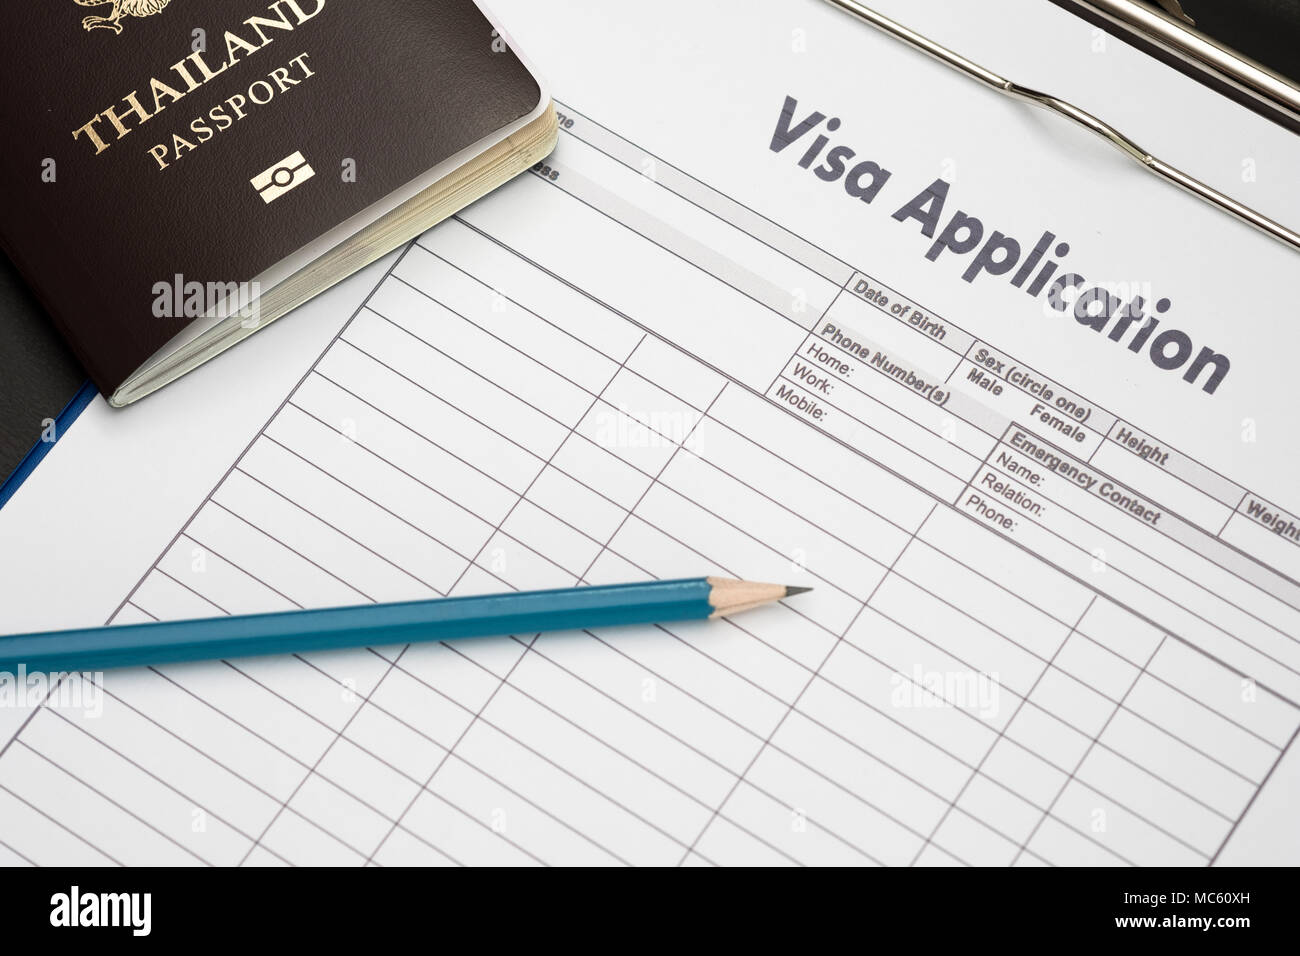 visa application form to travel immigration a document money for